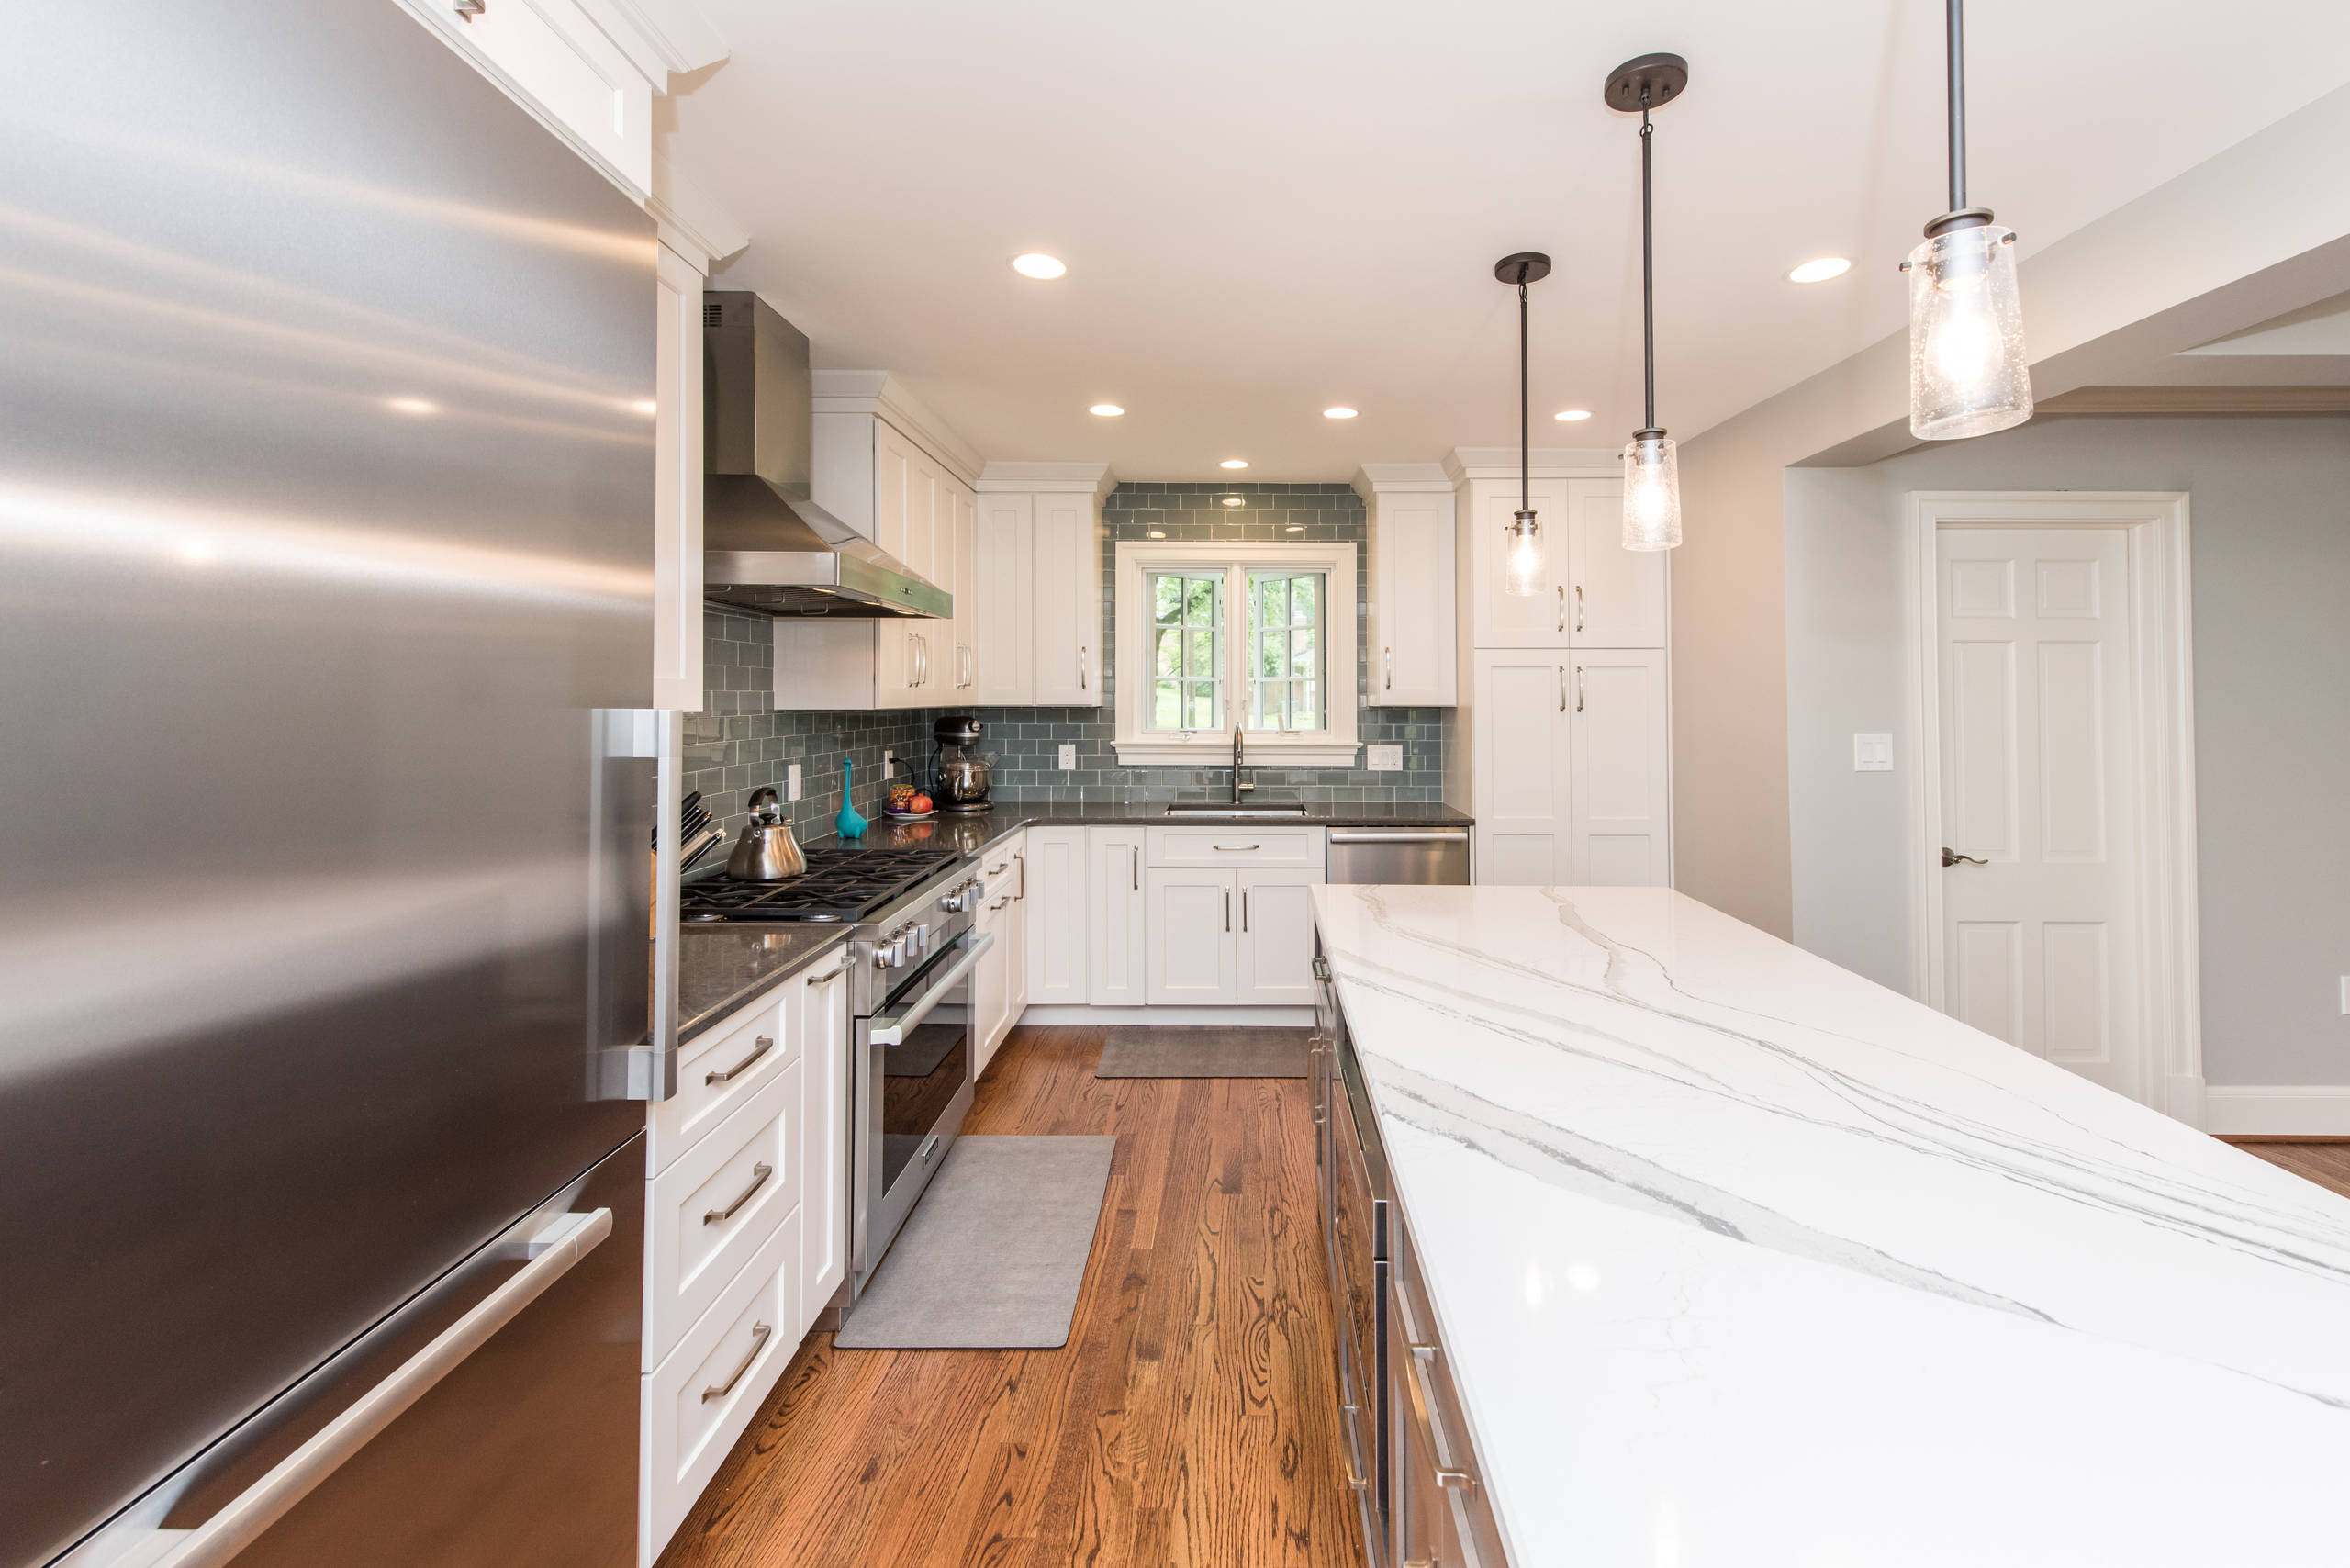 Kensington, MD Eclectic Kitchen and Bath Remodel